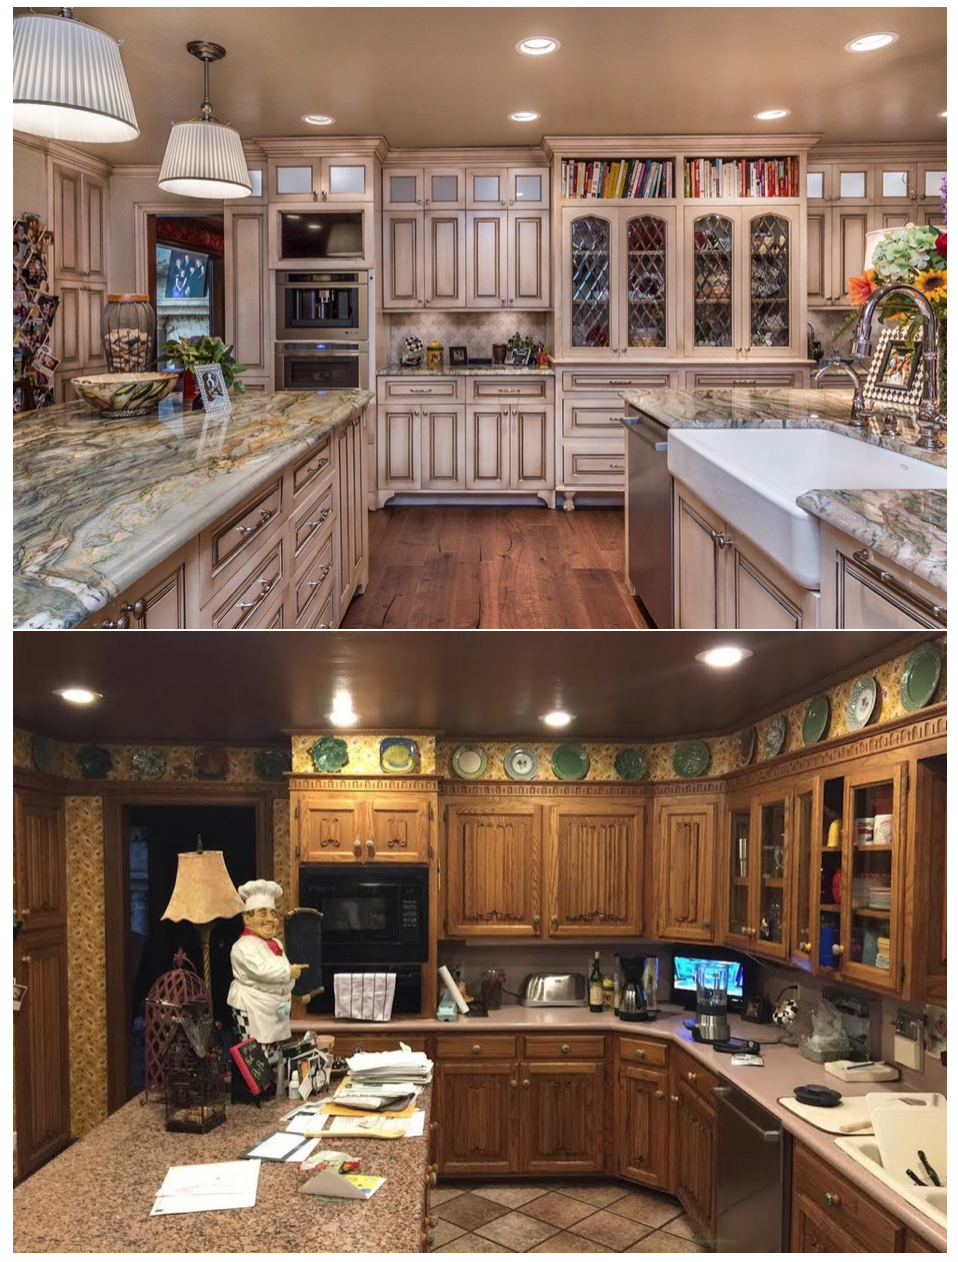 Top - Kitchen After, Bottom - Kitchen Before